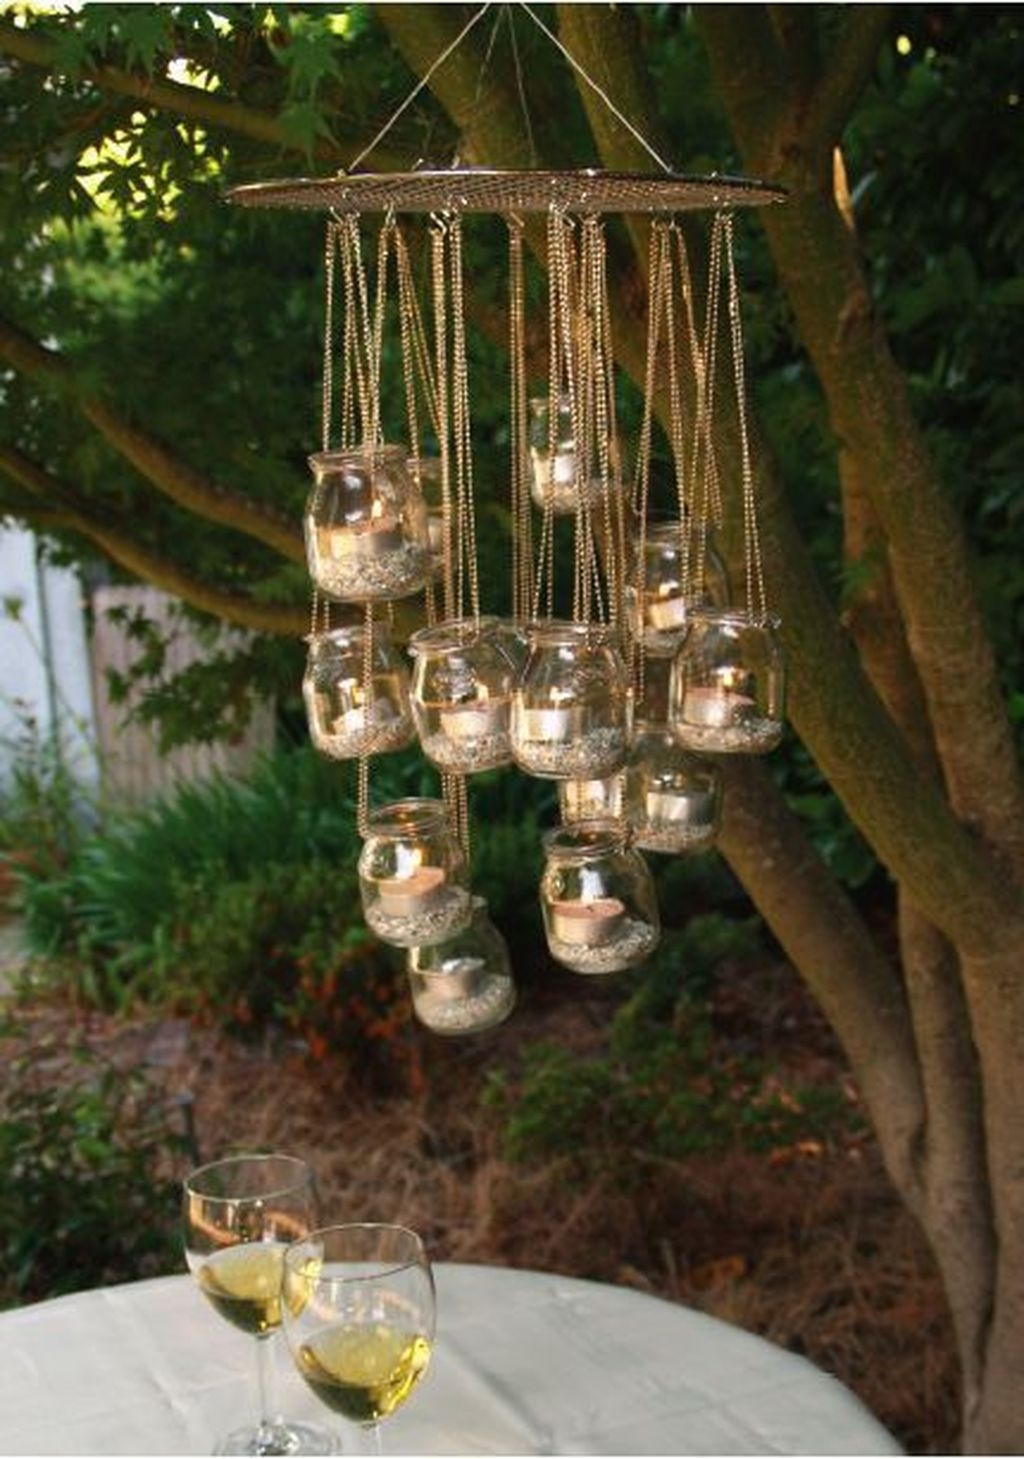 Inspiring Outdoor Lighting Ideas For Your Garden 26